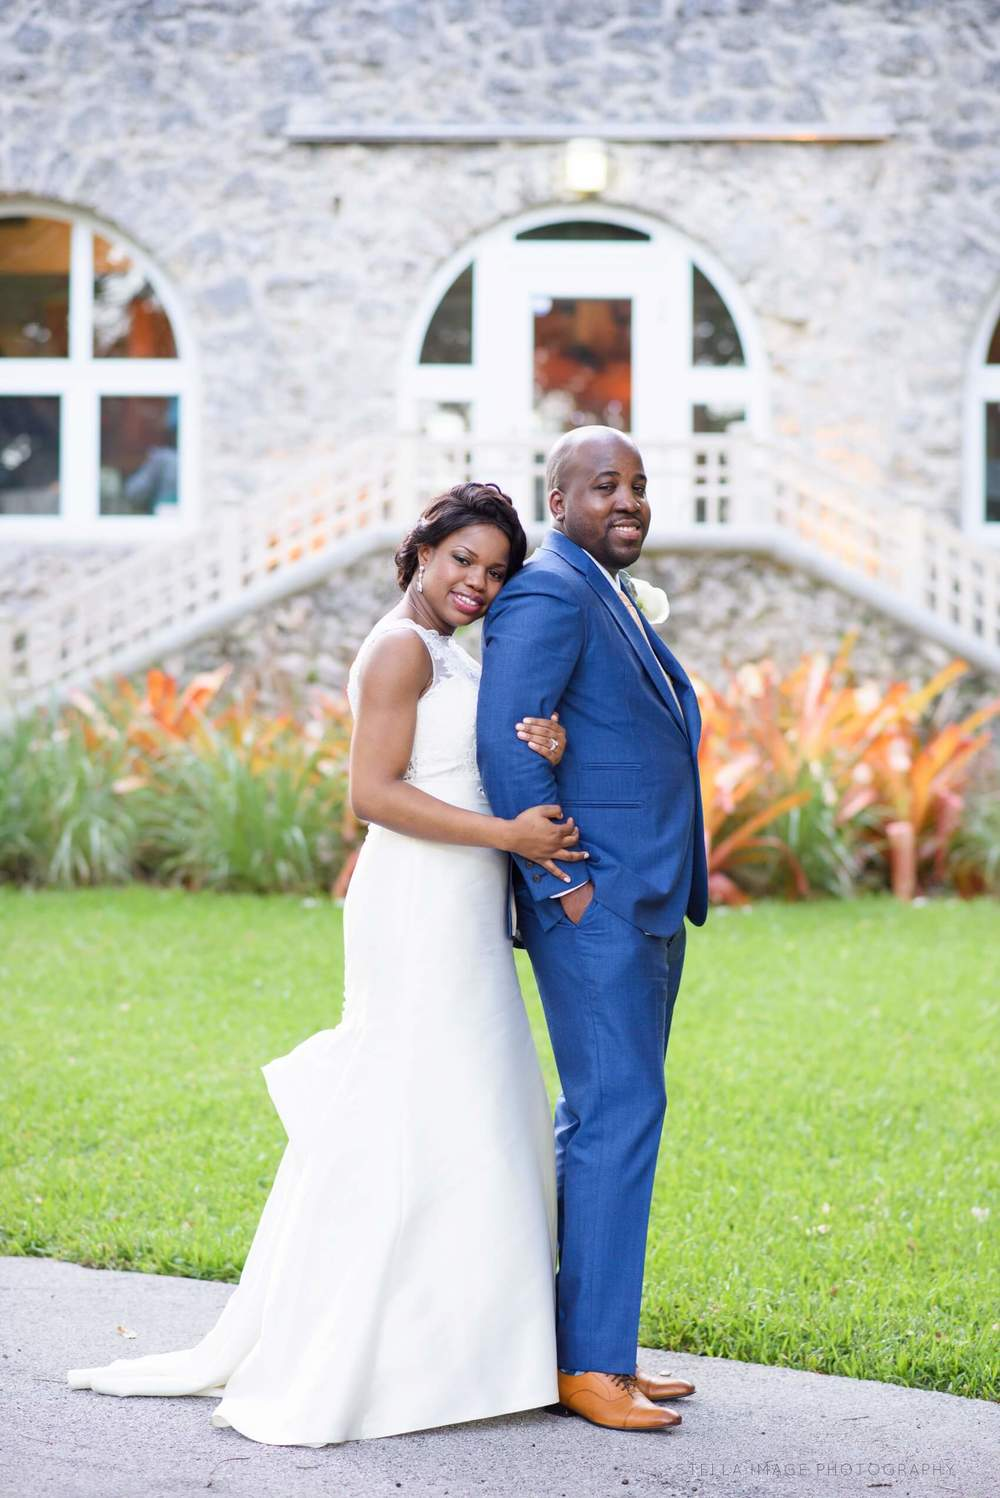 Bride Oluchi holds arm of Groom Marvin in front of the Woman's Club of Coconut Grove.